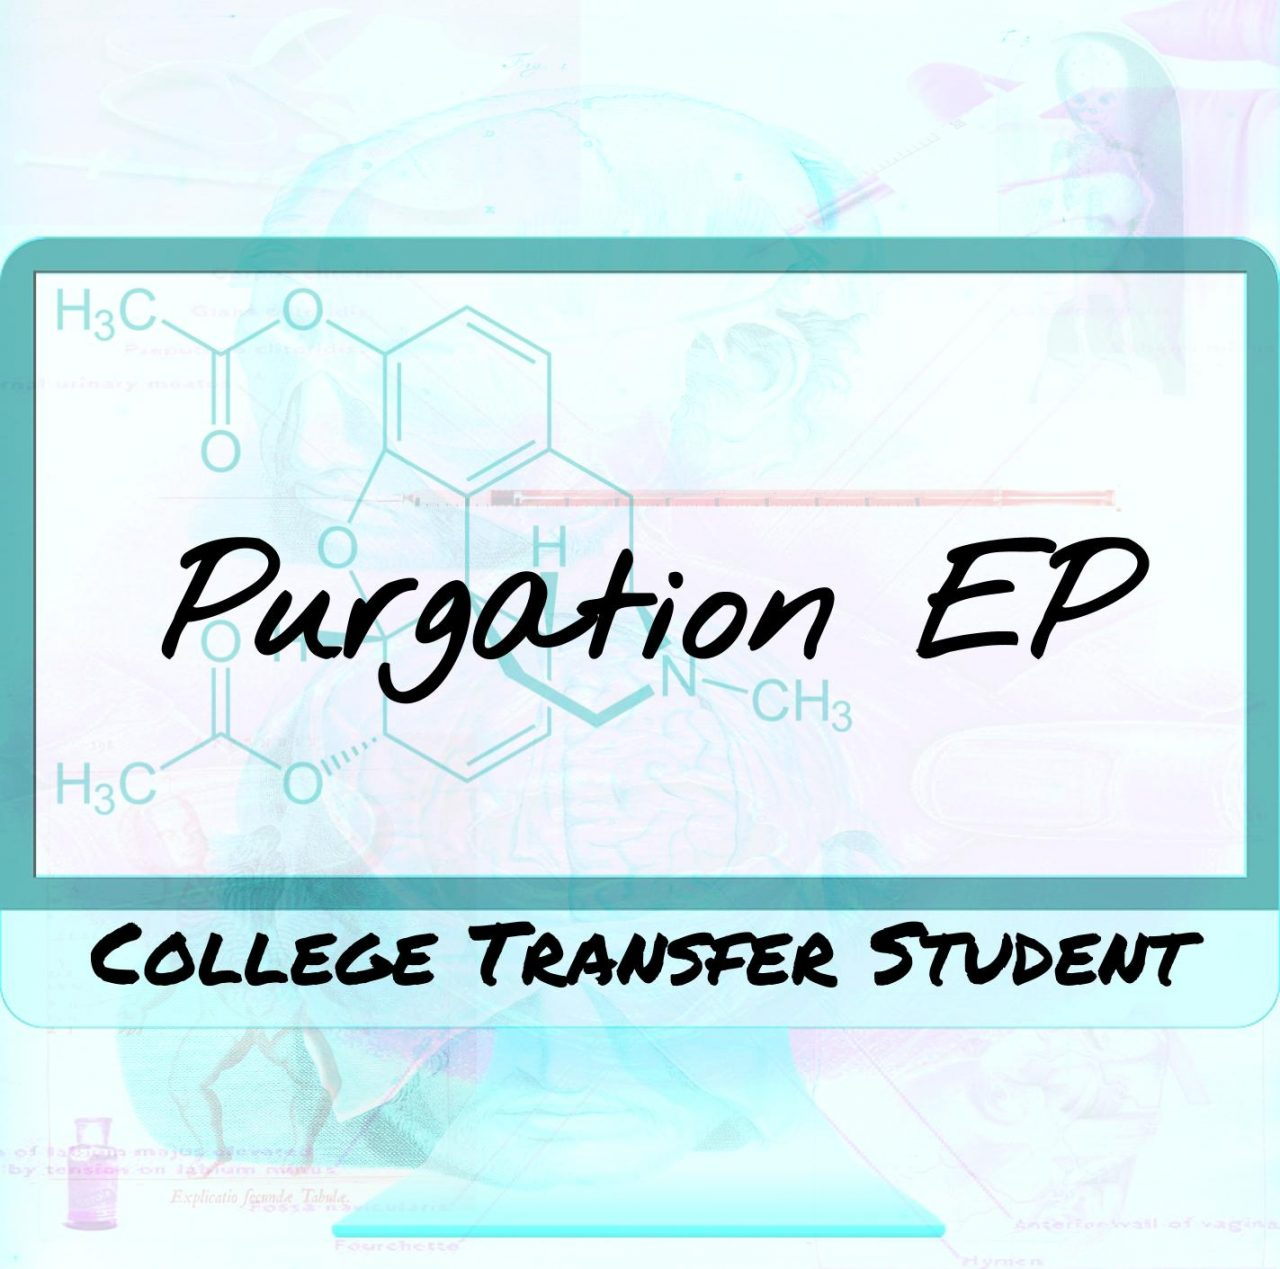 https://www.collegetransferstudent.com/wp-content/uploads/2017/05/Front-CD-Artwork-Purgation-EP-Album-Artwork-1280x1269.jpg